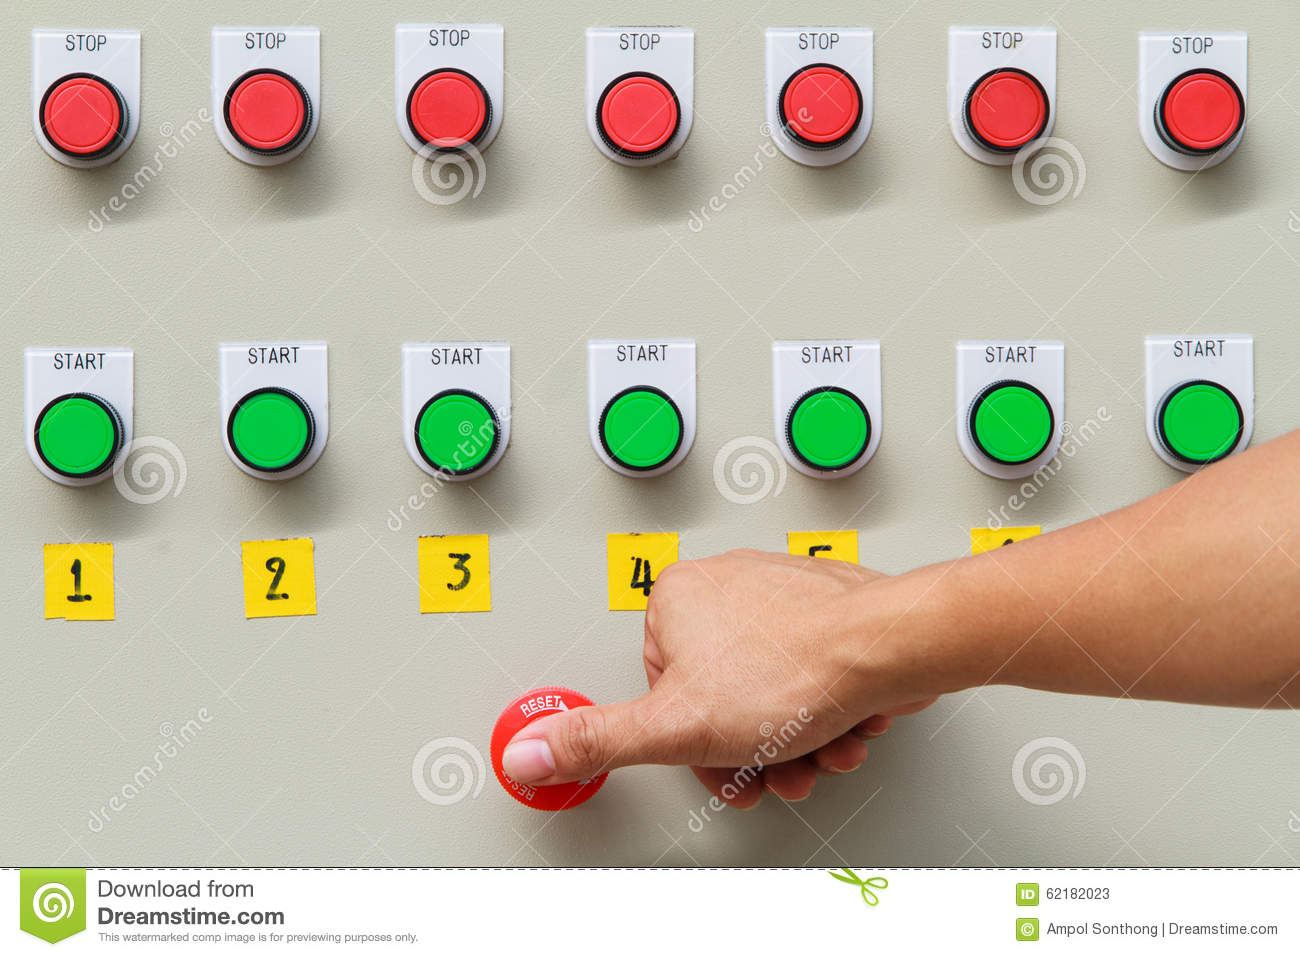 Emergency stop icon clipart emergency off - Button Control Emergency